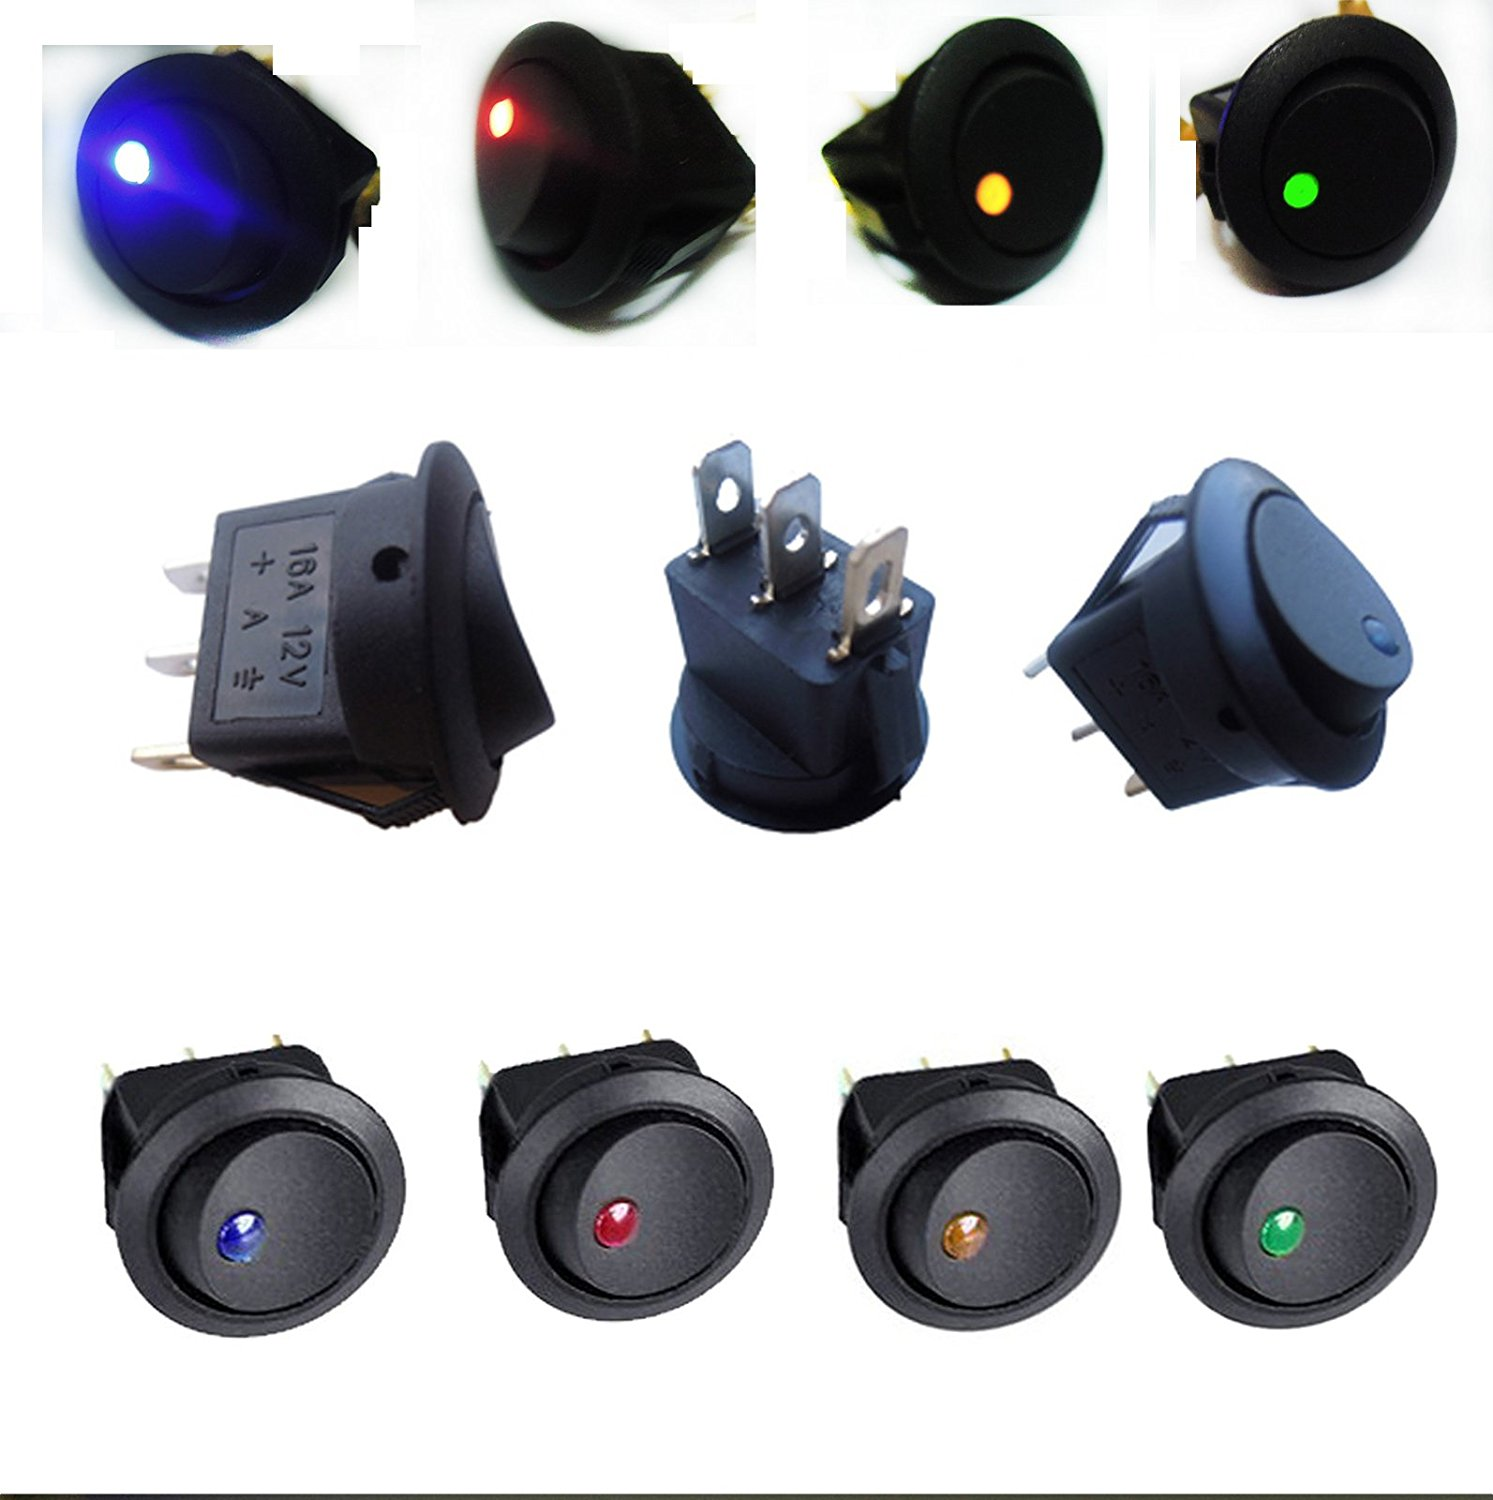 Cheap Toggle Switch Spst Find Deals On Line At 12v Lighted Rocker All Electronics Corp Get Quotations Amazingseller Lot20 4color Car Round Boat Led Light Off